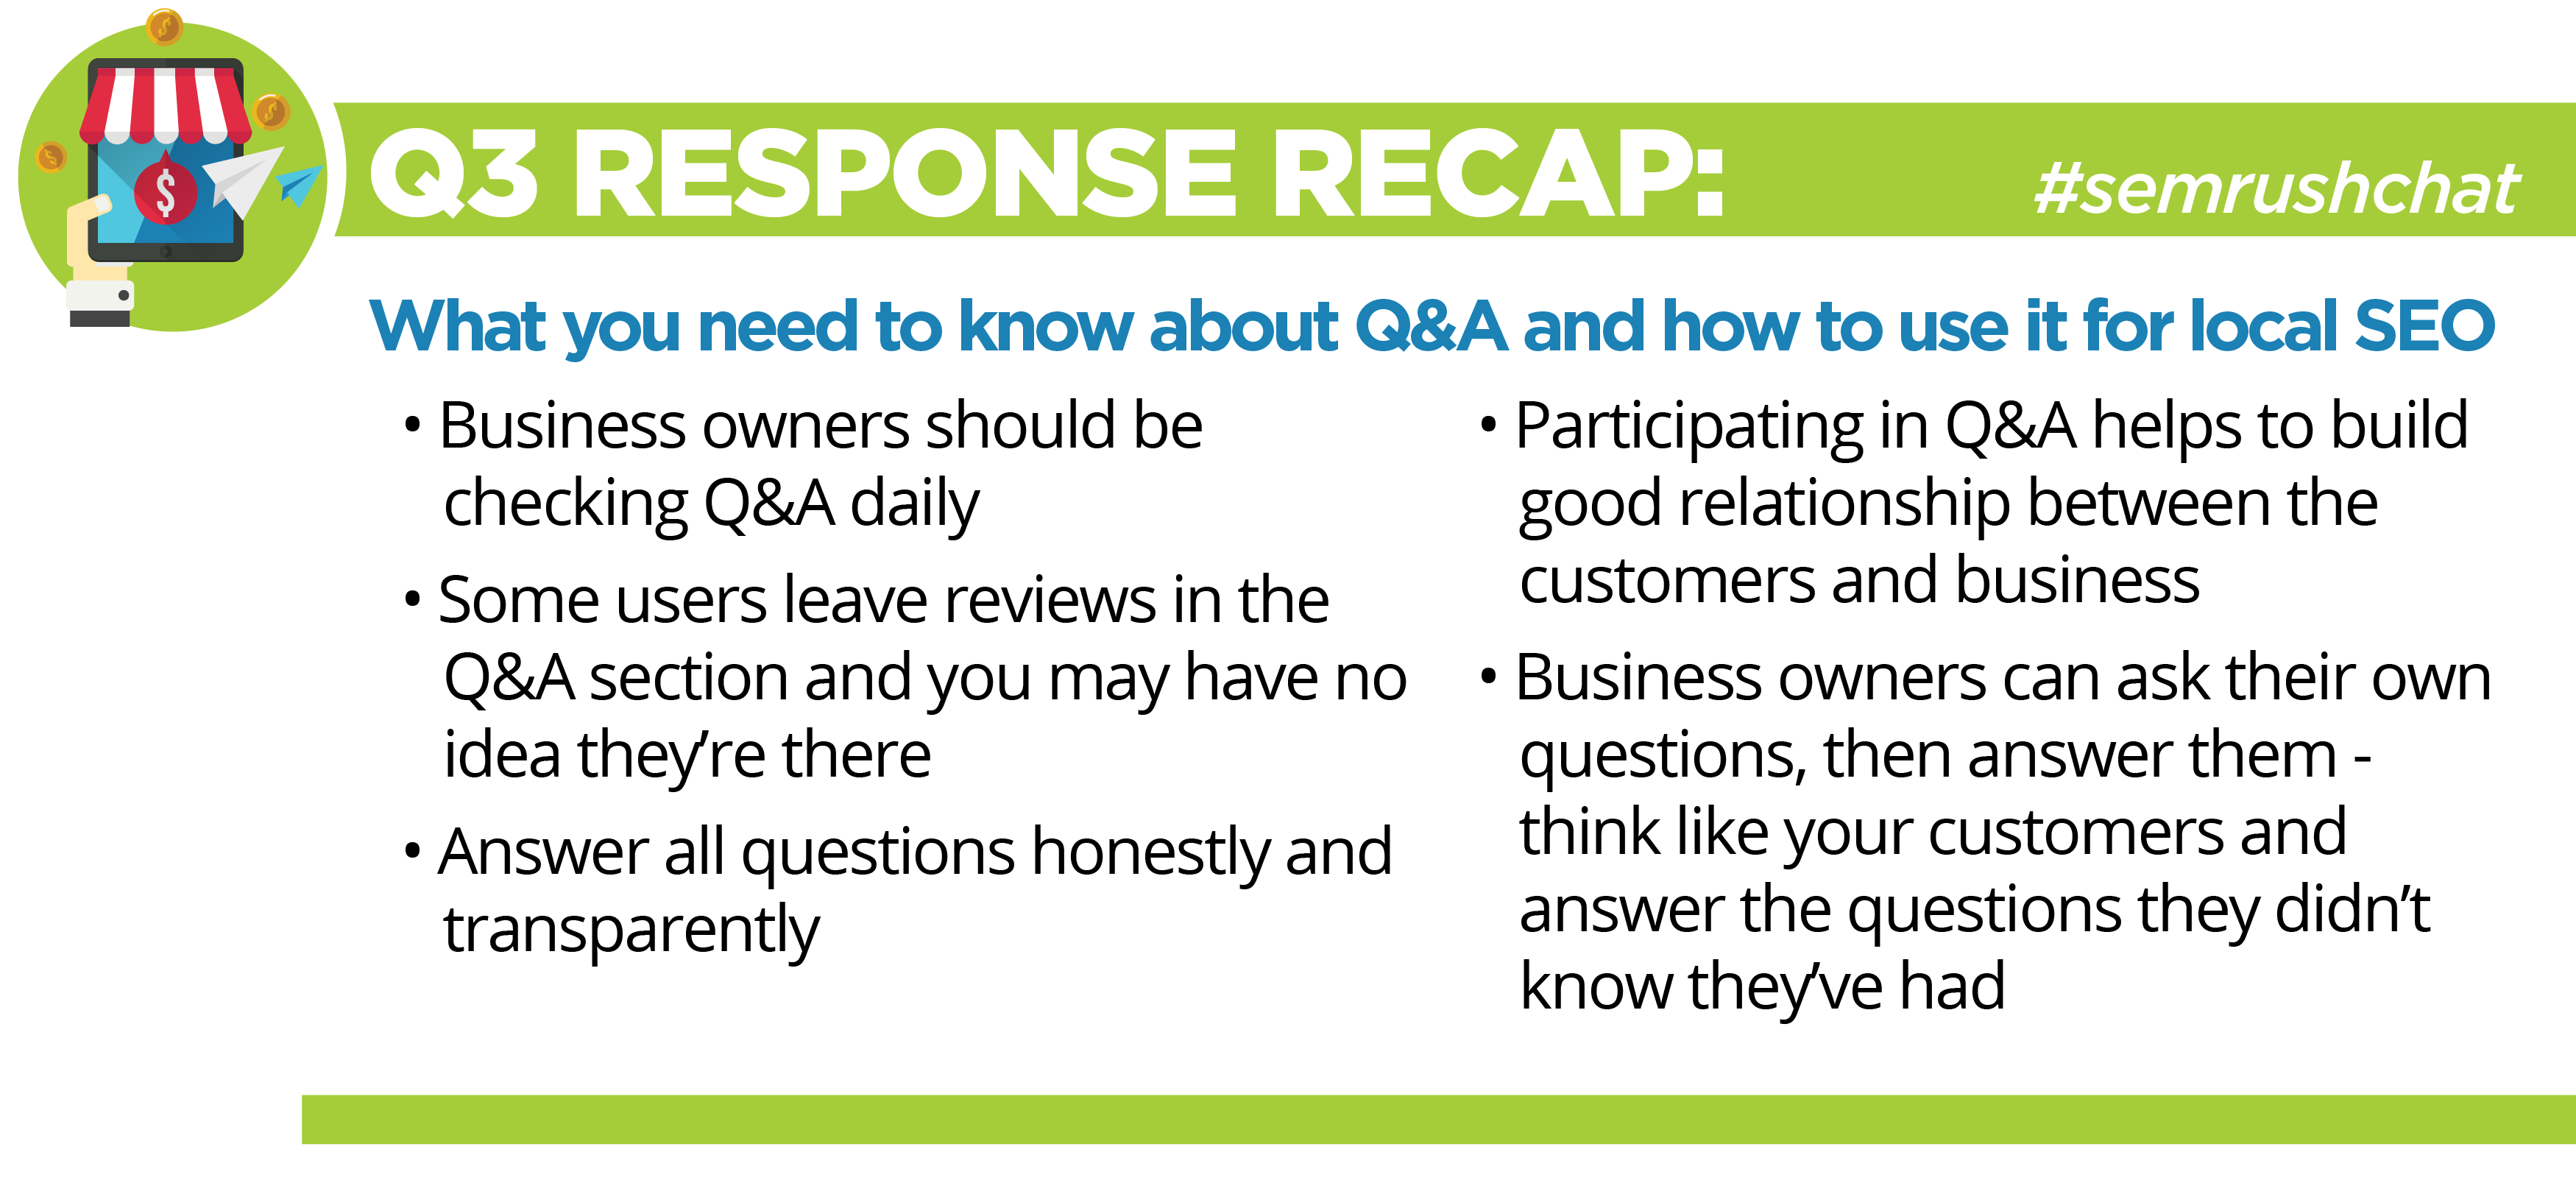 q3-chat-recap-01.png